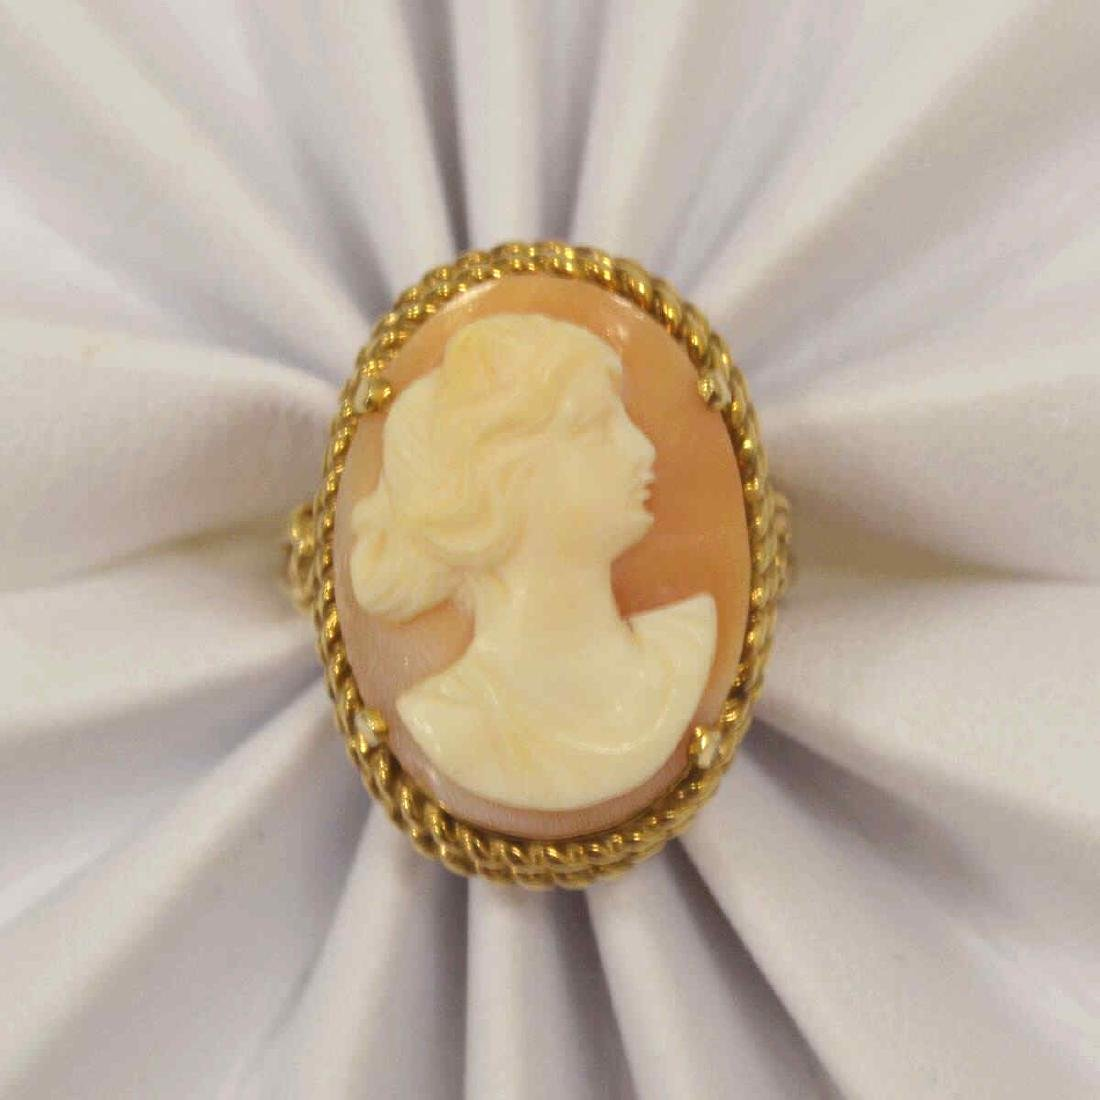 10kt yellow gold cameo ring - 5